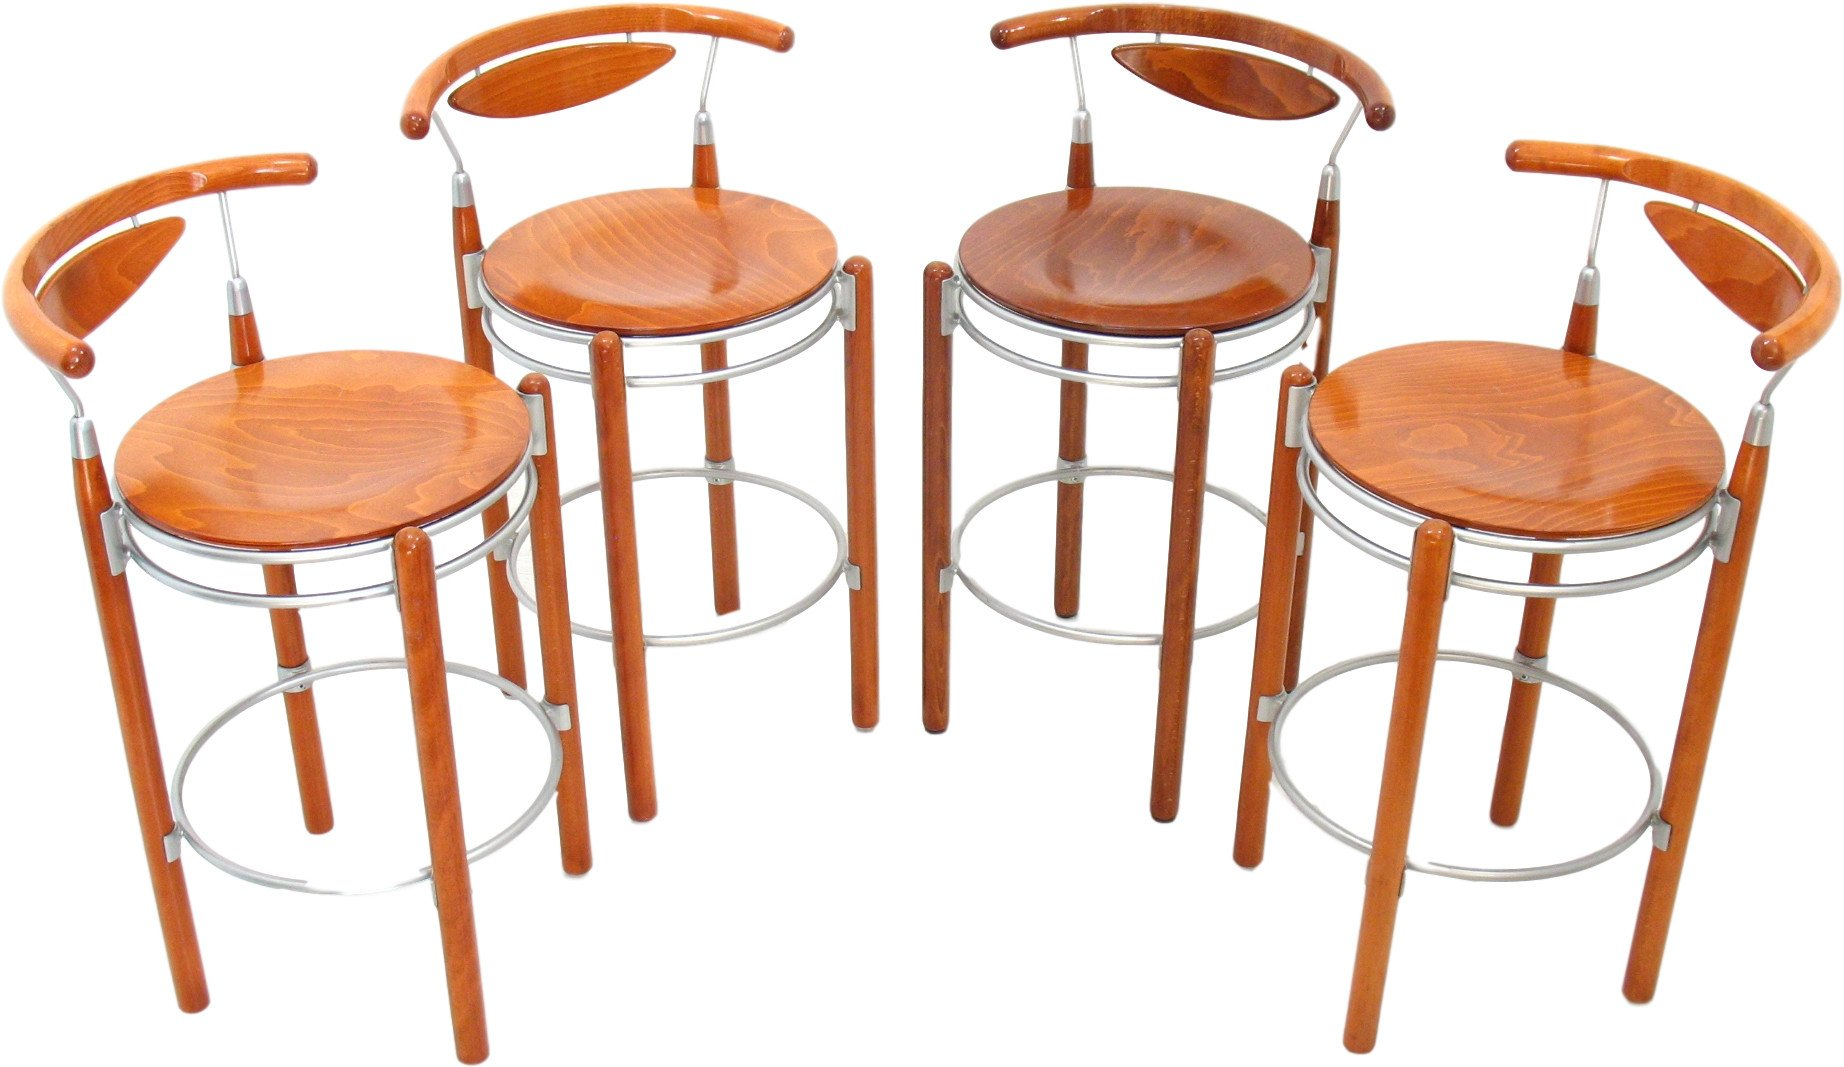 Set of Four Bar Stools, Hutten, 1990s